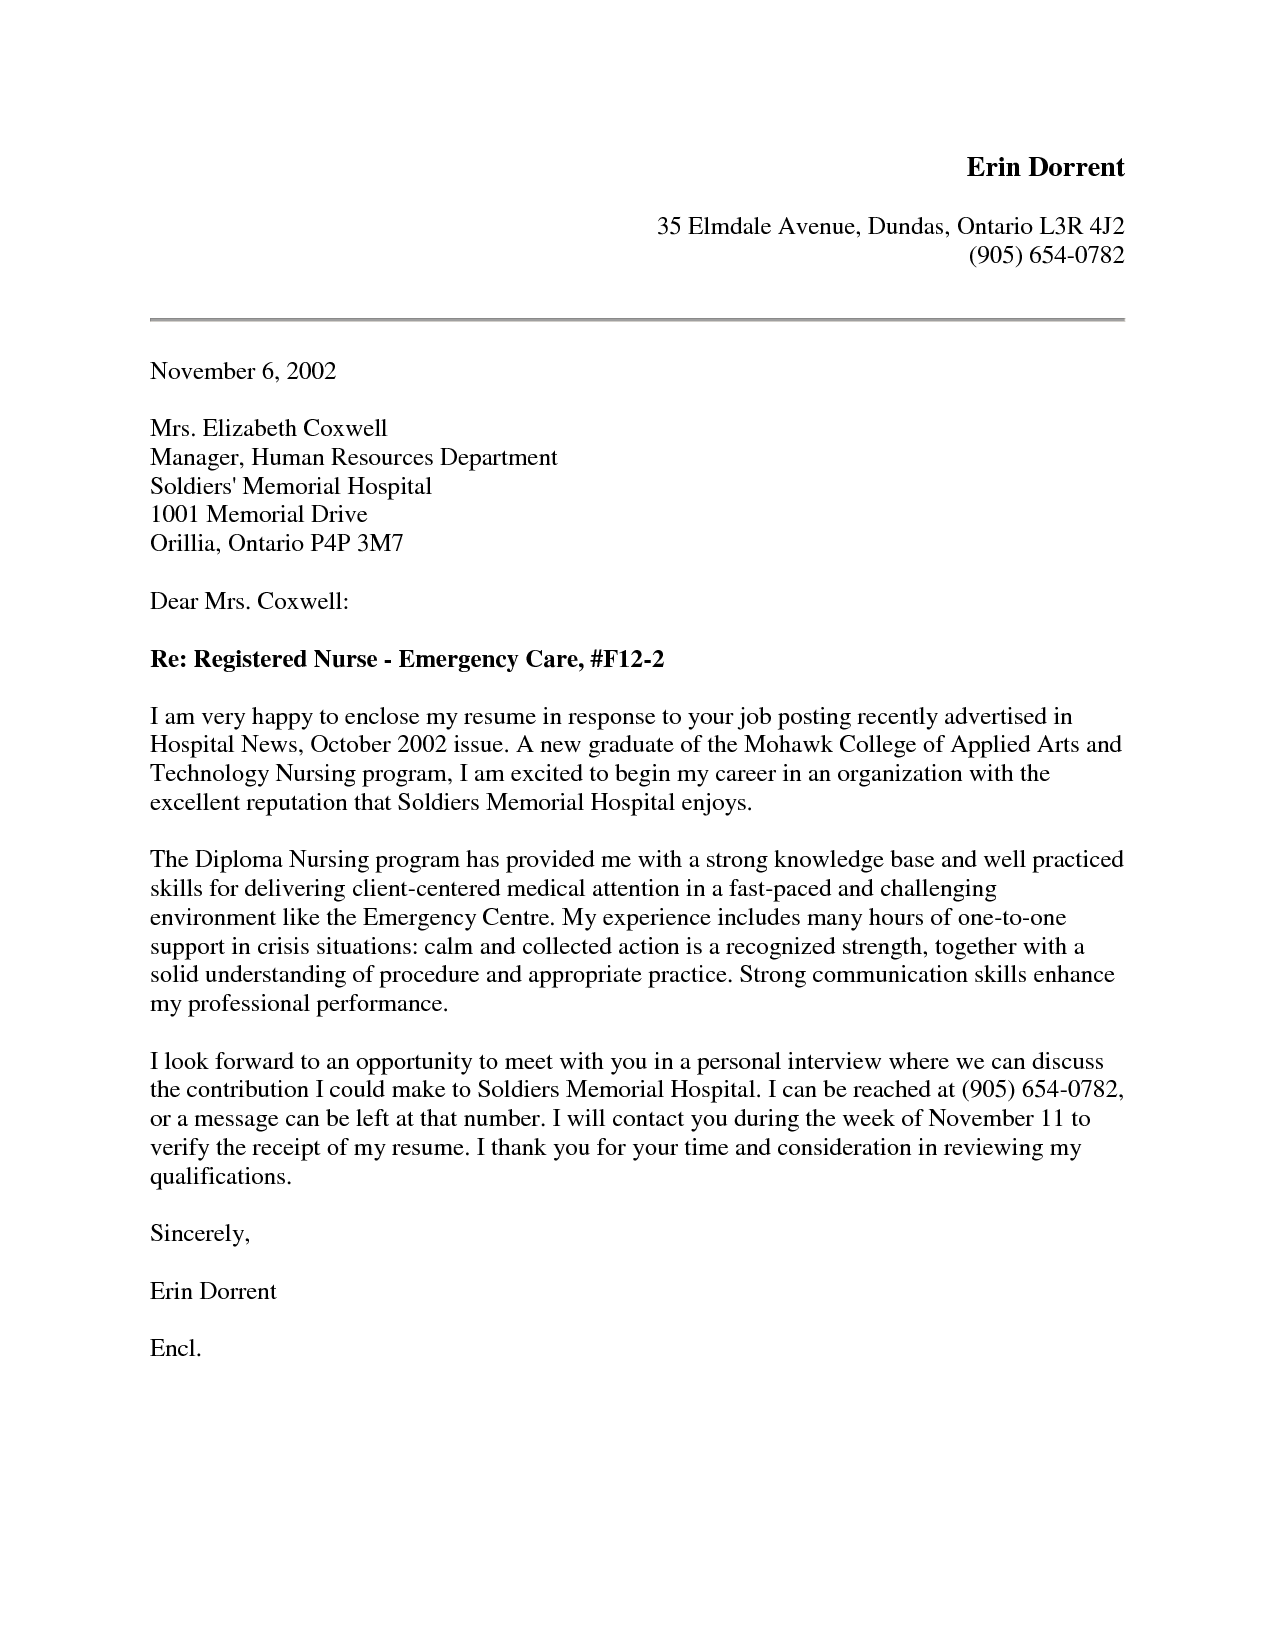 General Cover Letter For Resume Learn How To Write A Nursing Cover Letter Insidewe Have Entry